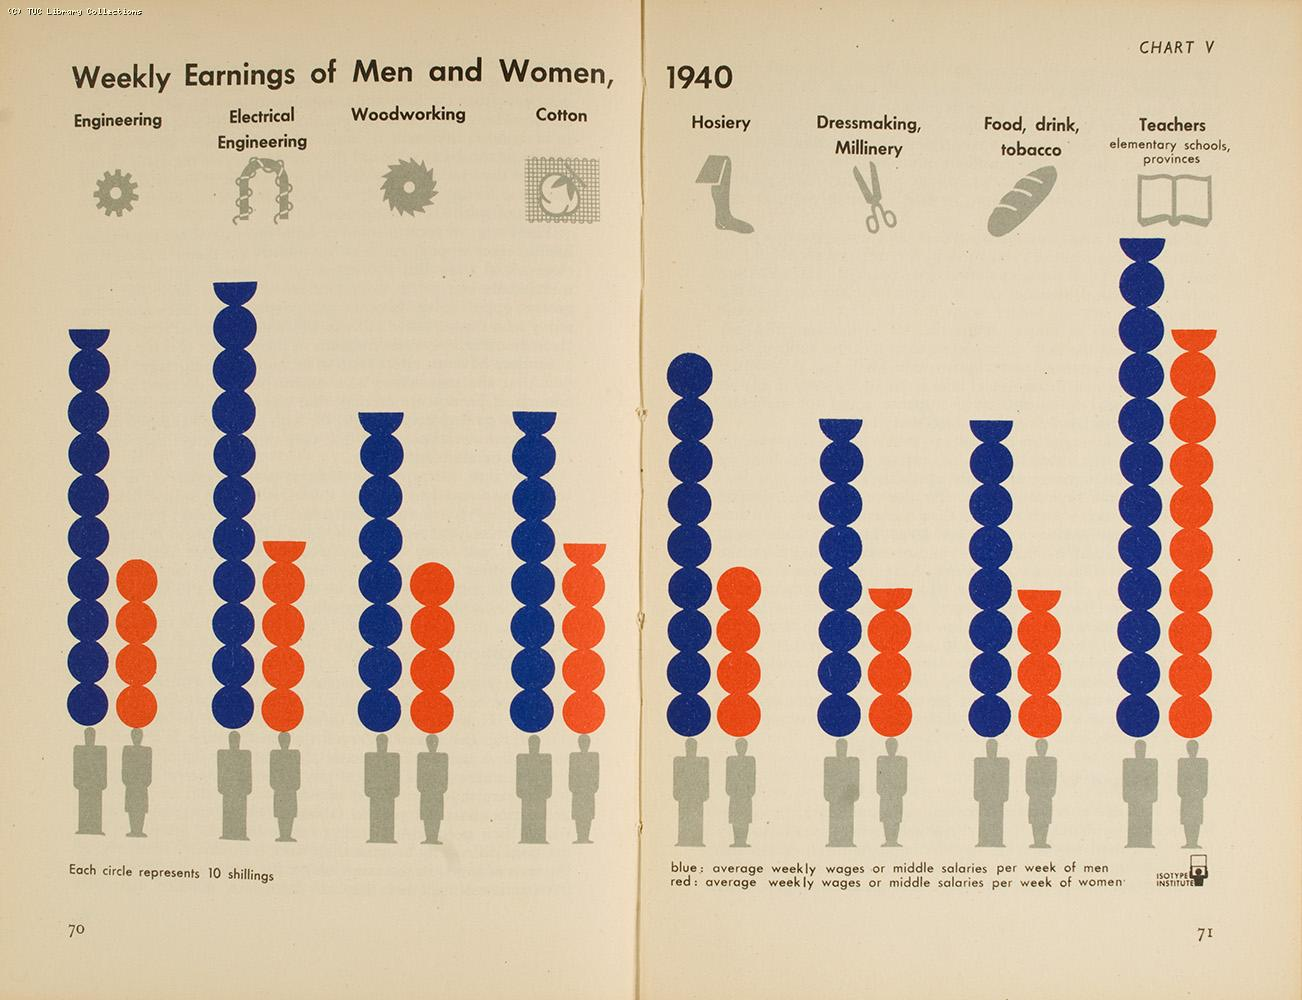 Weekly earnings of men and women, 1940